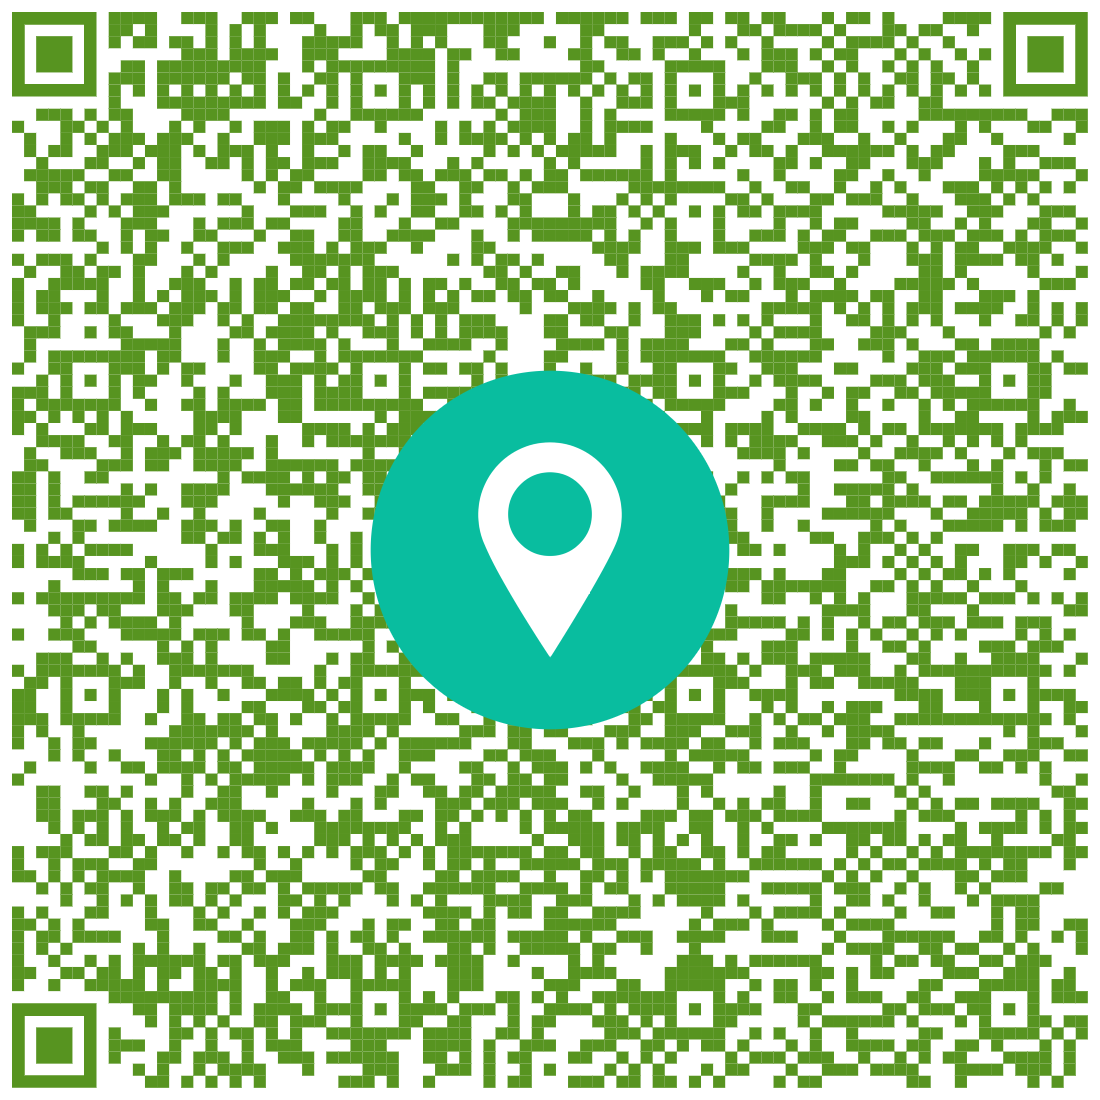 qr-code - pologa Gmap.png